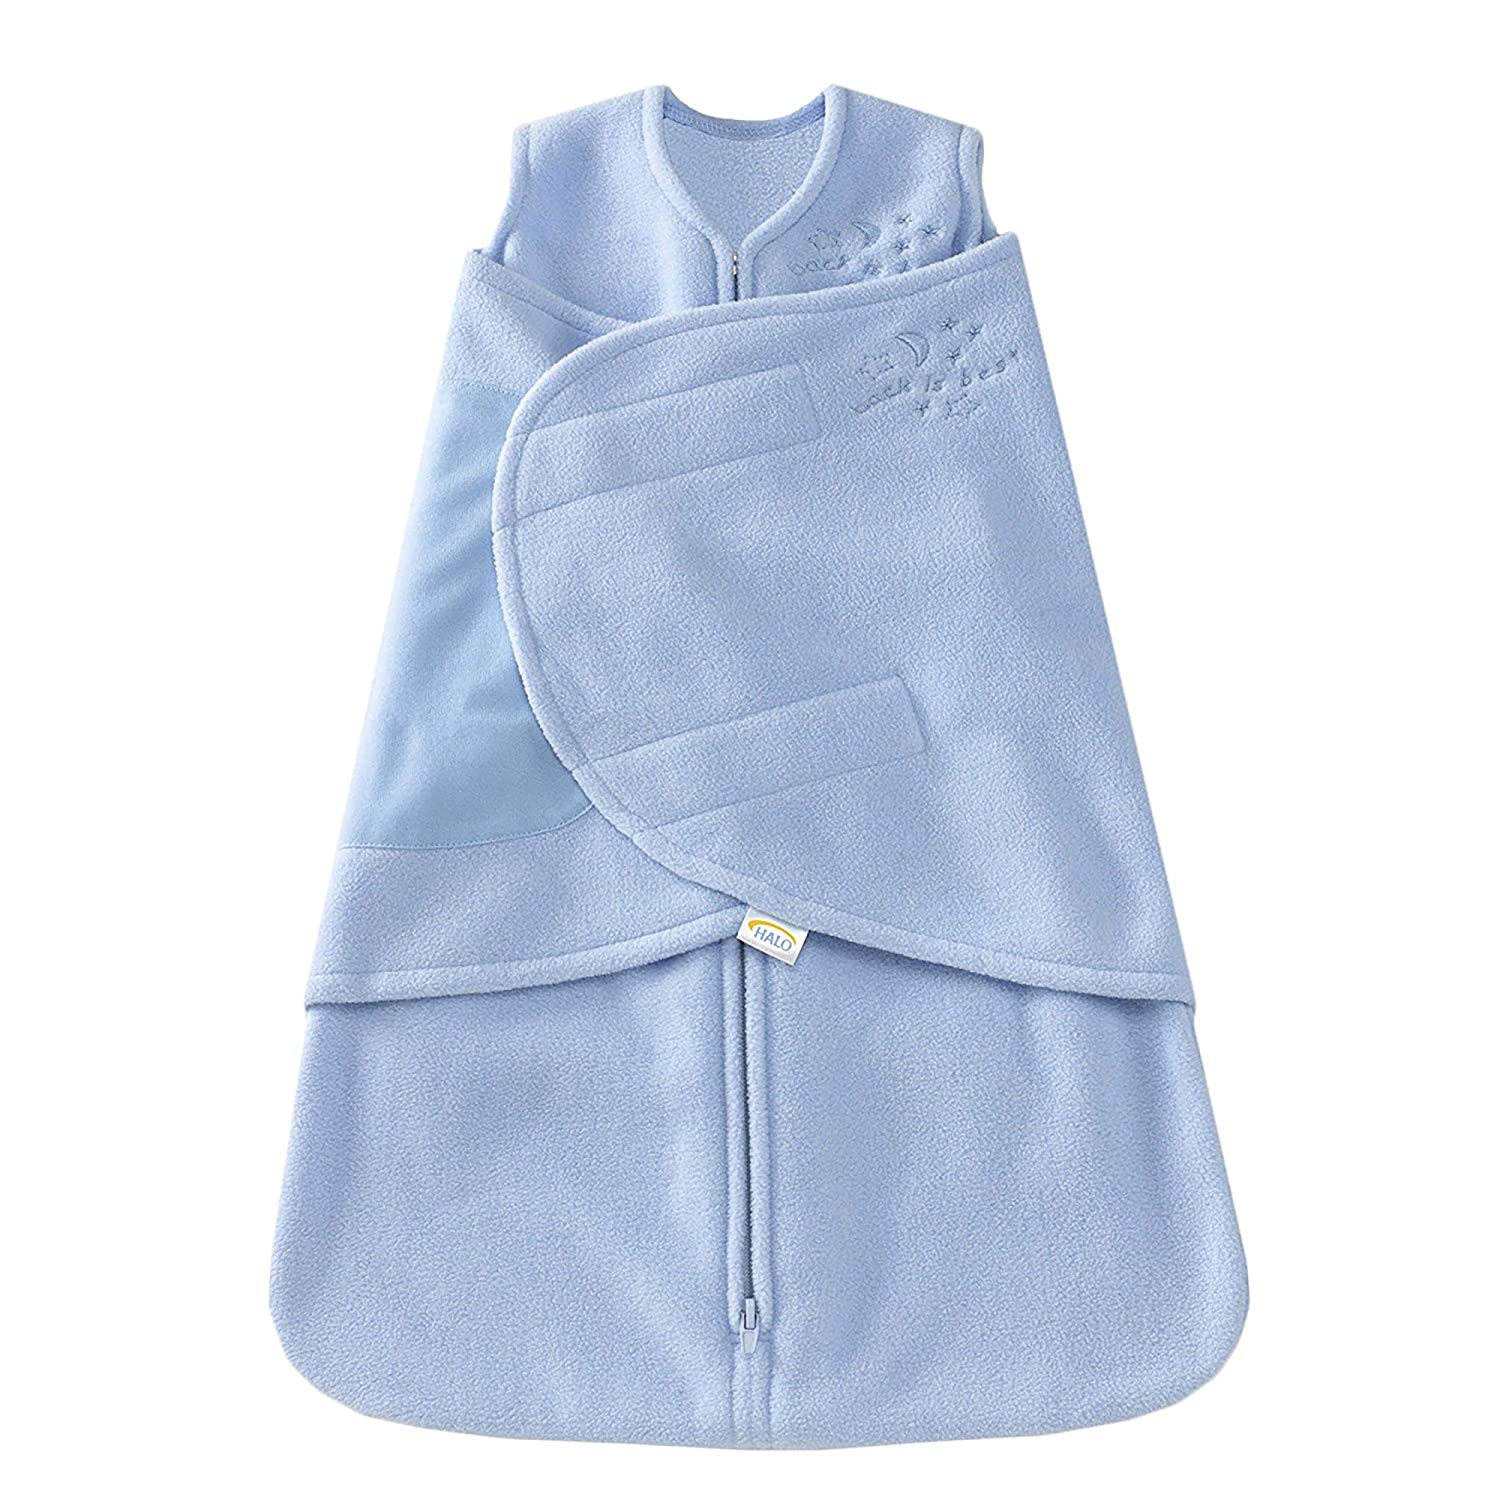 HALO Sleepsack Micro-Fleece Swaddle, Baby Blue, Small: Baby